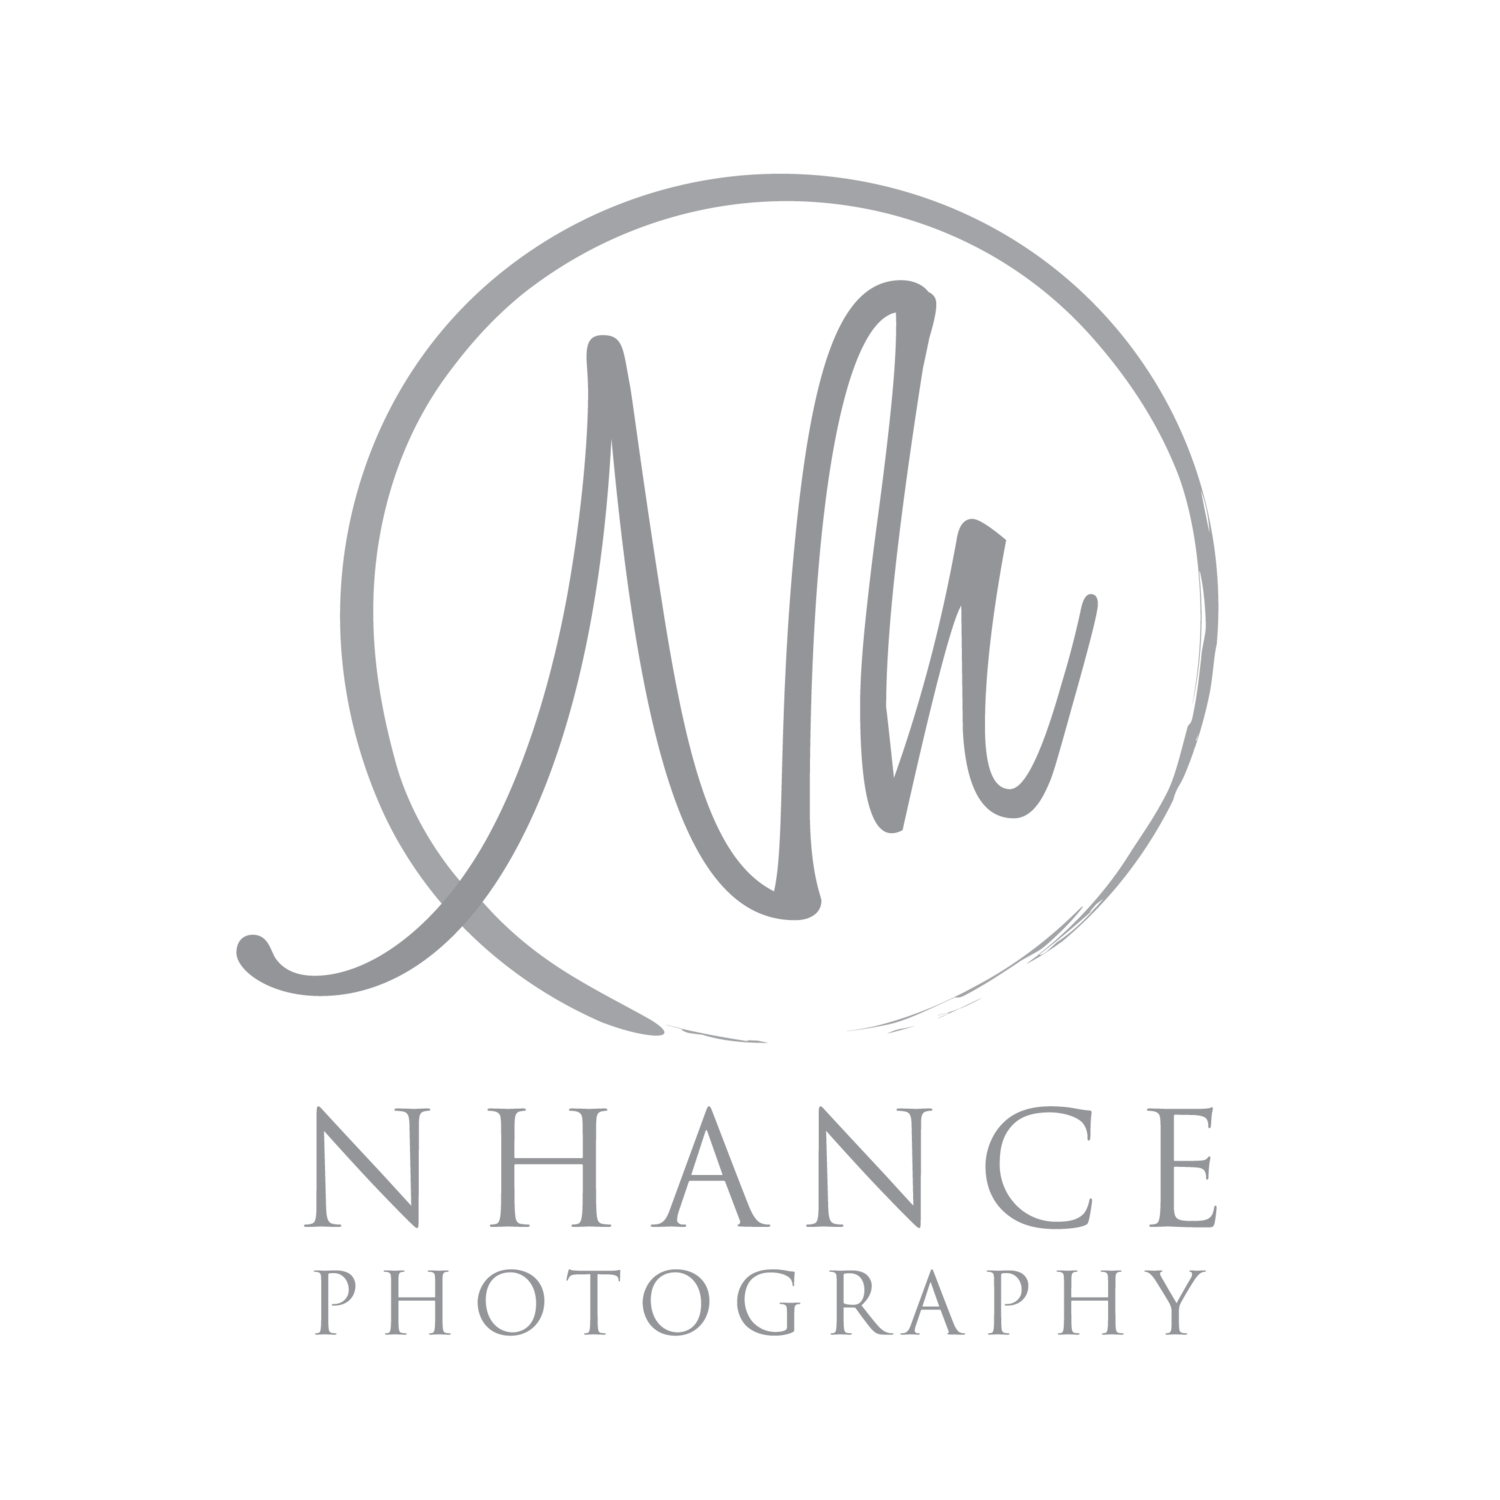 NHance Photography